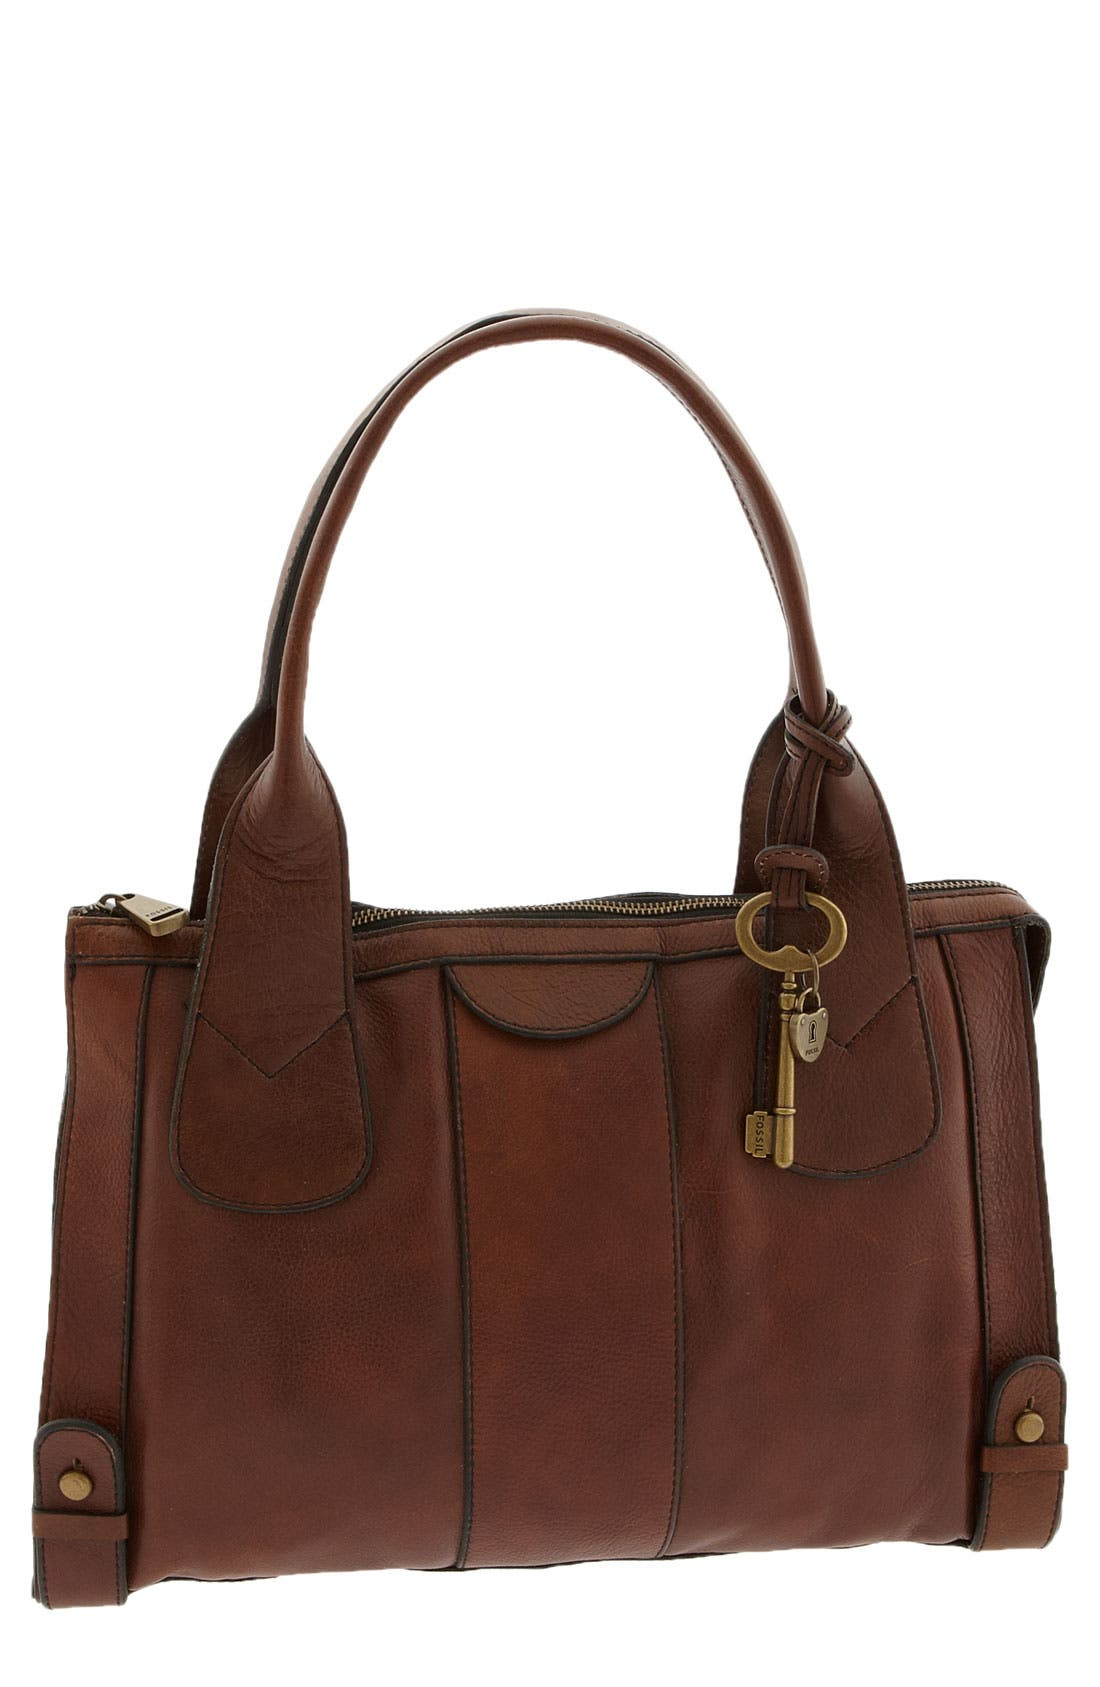 Main Image - Fossil 'Vintage Reissue' Satchel